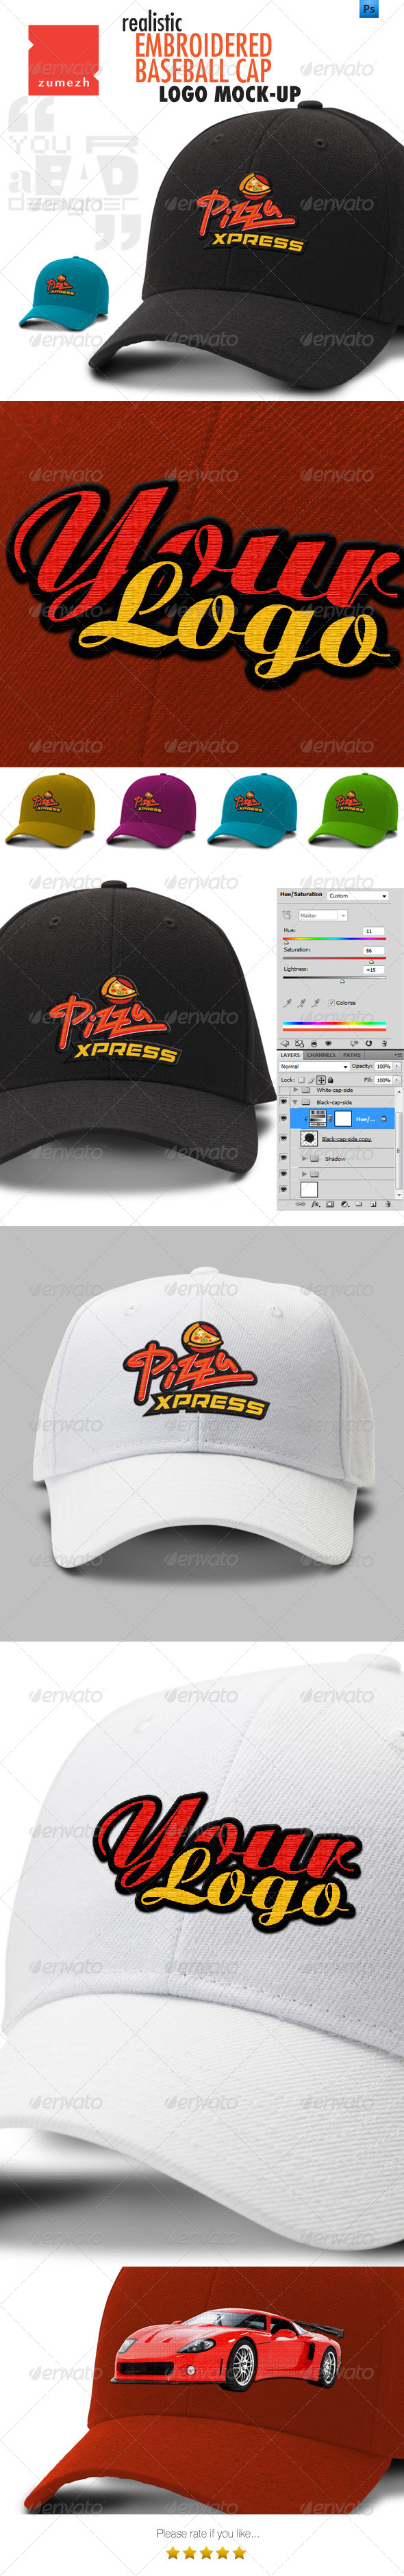 GraphicRiver Polo Cap Mock-up with Embroidered Logo 6489186